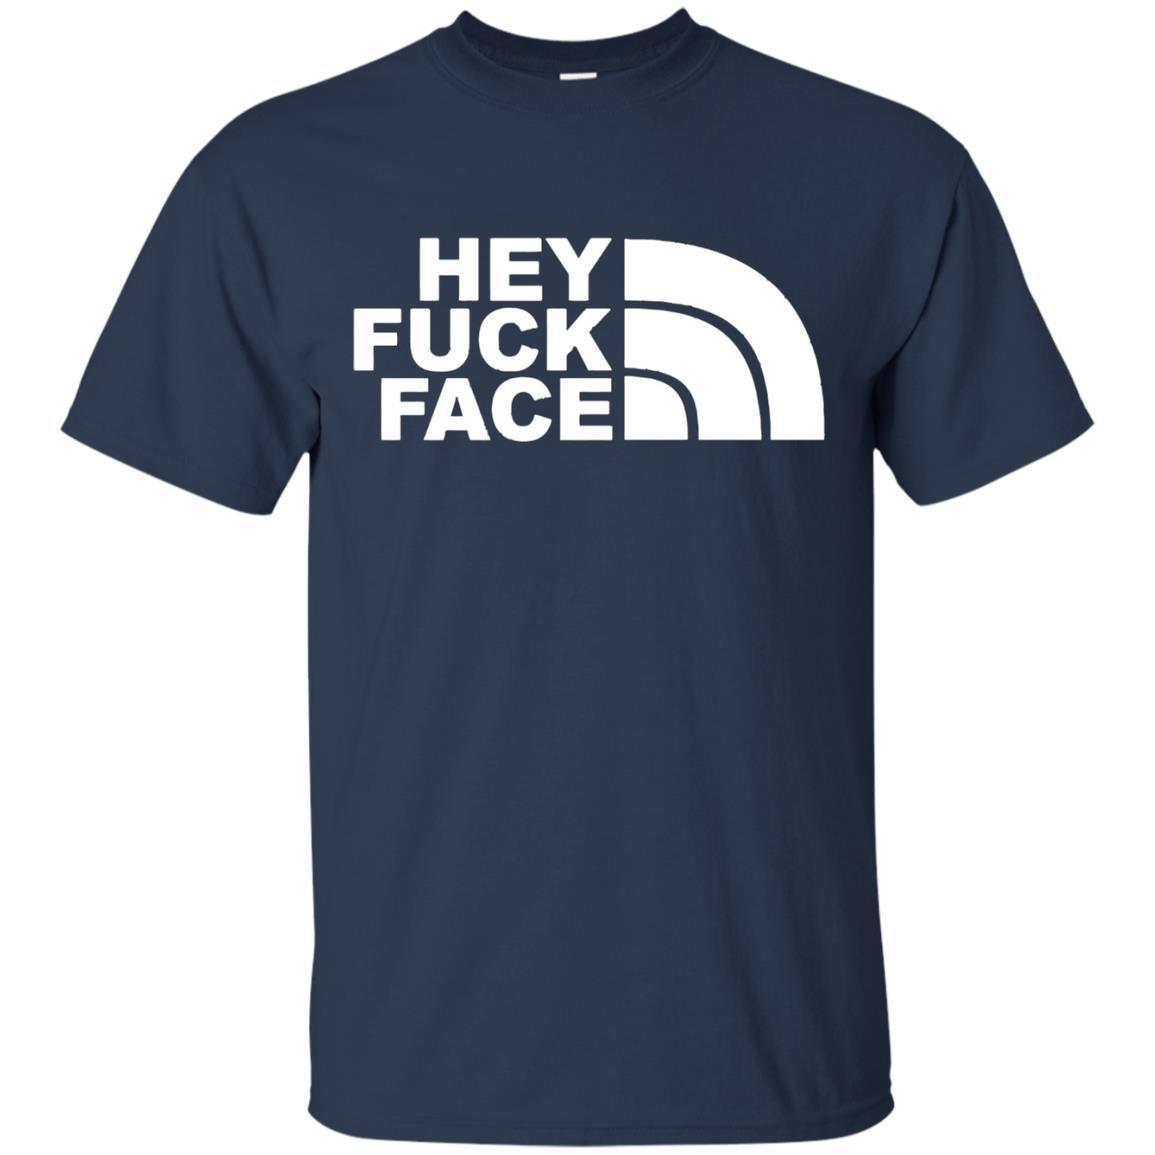 HEY FUCK FACE T-SHIRT Navy / 5XL